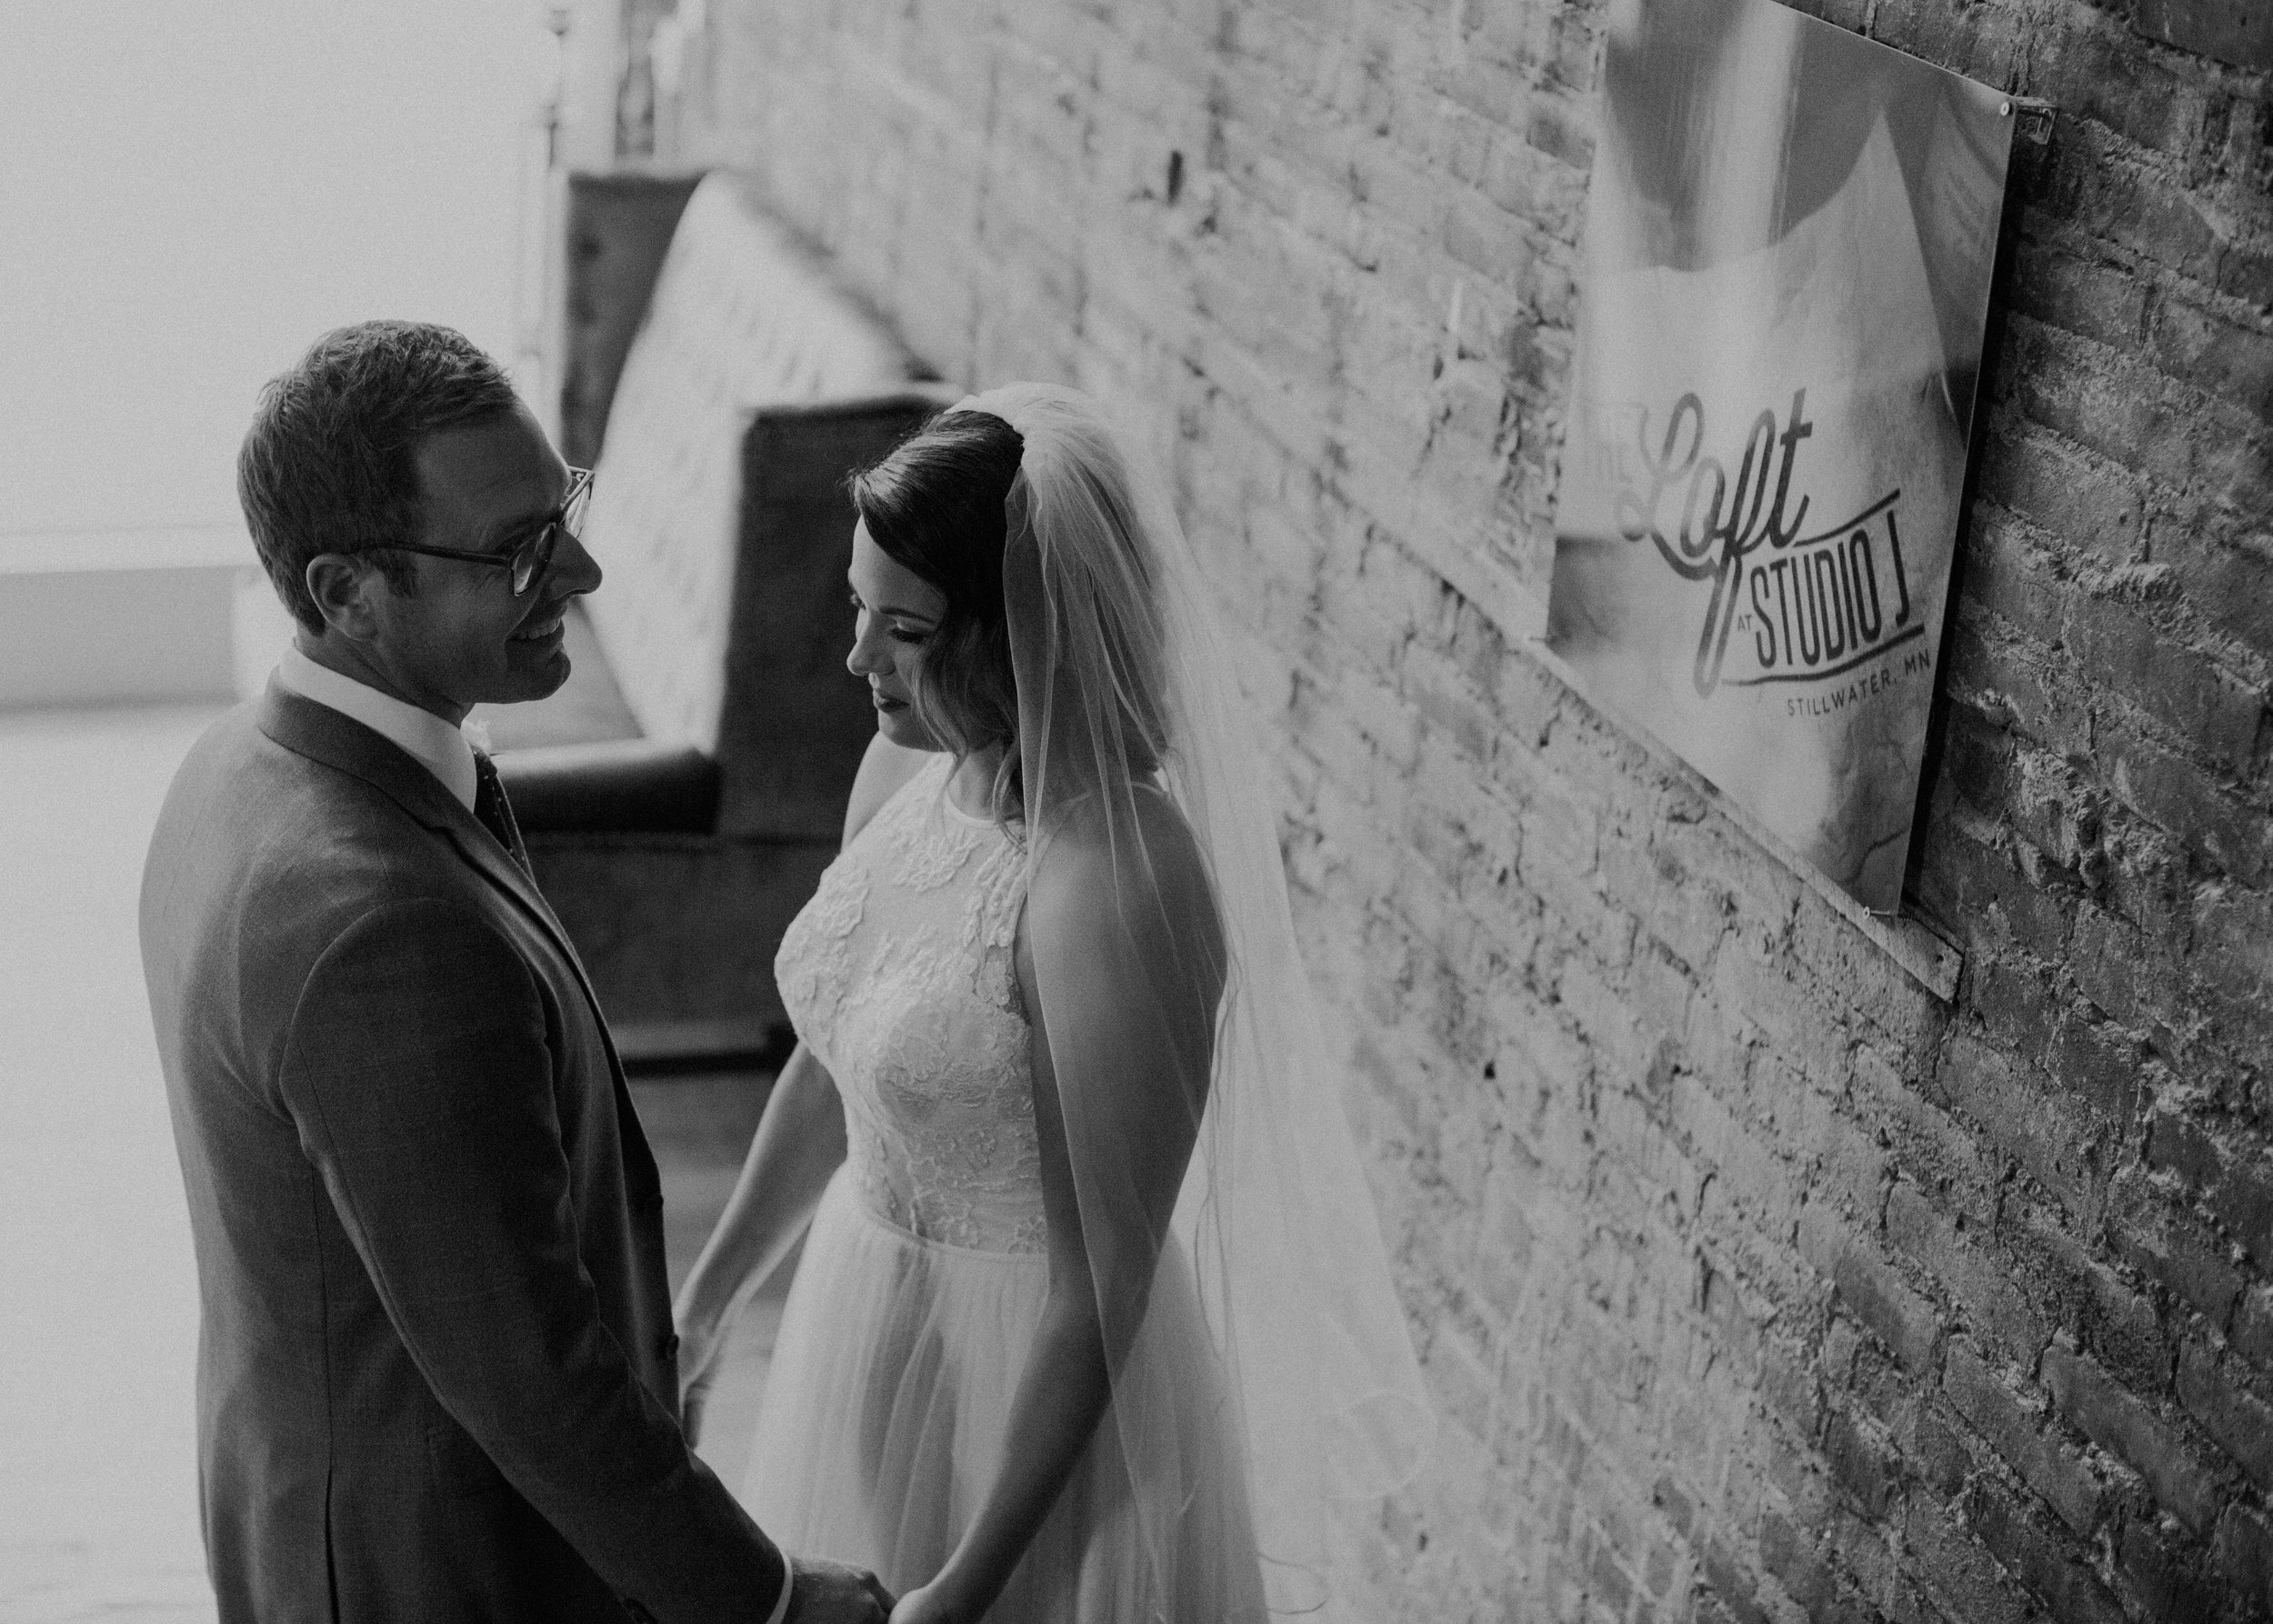 moody photographer captures raw and real moments at Stillwater MN wedding venue The Loft at Studio J